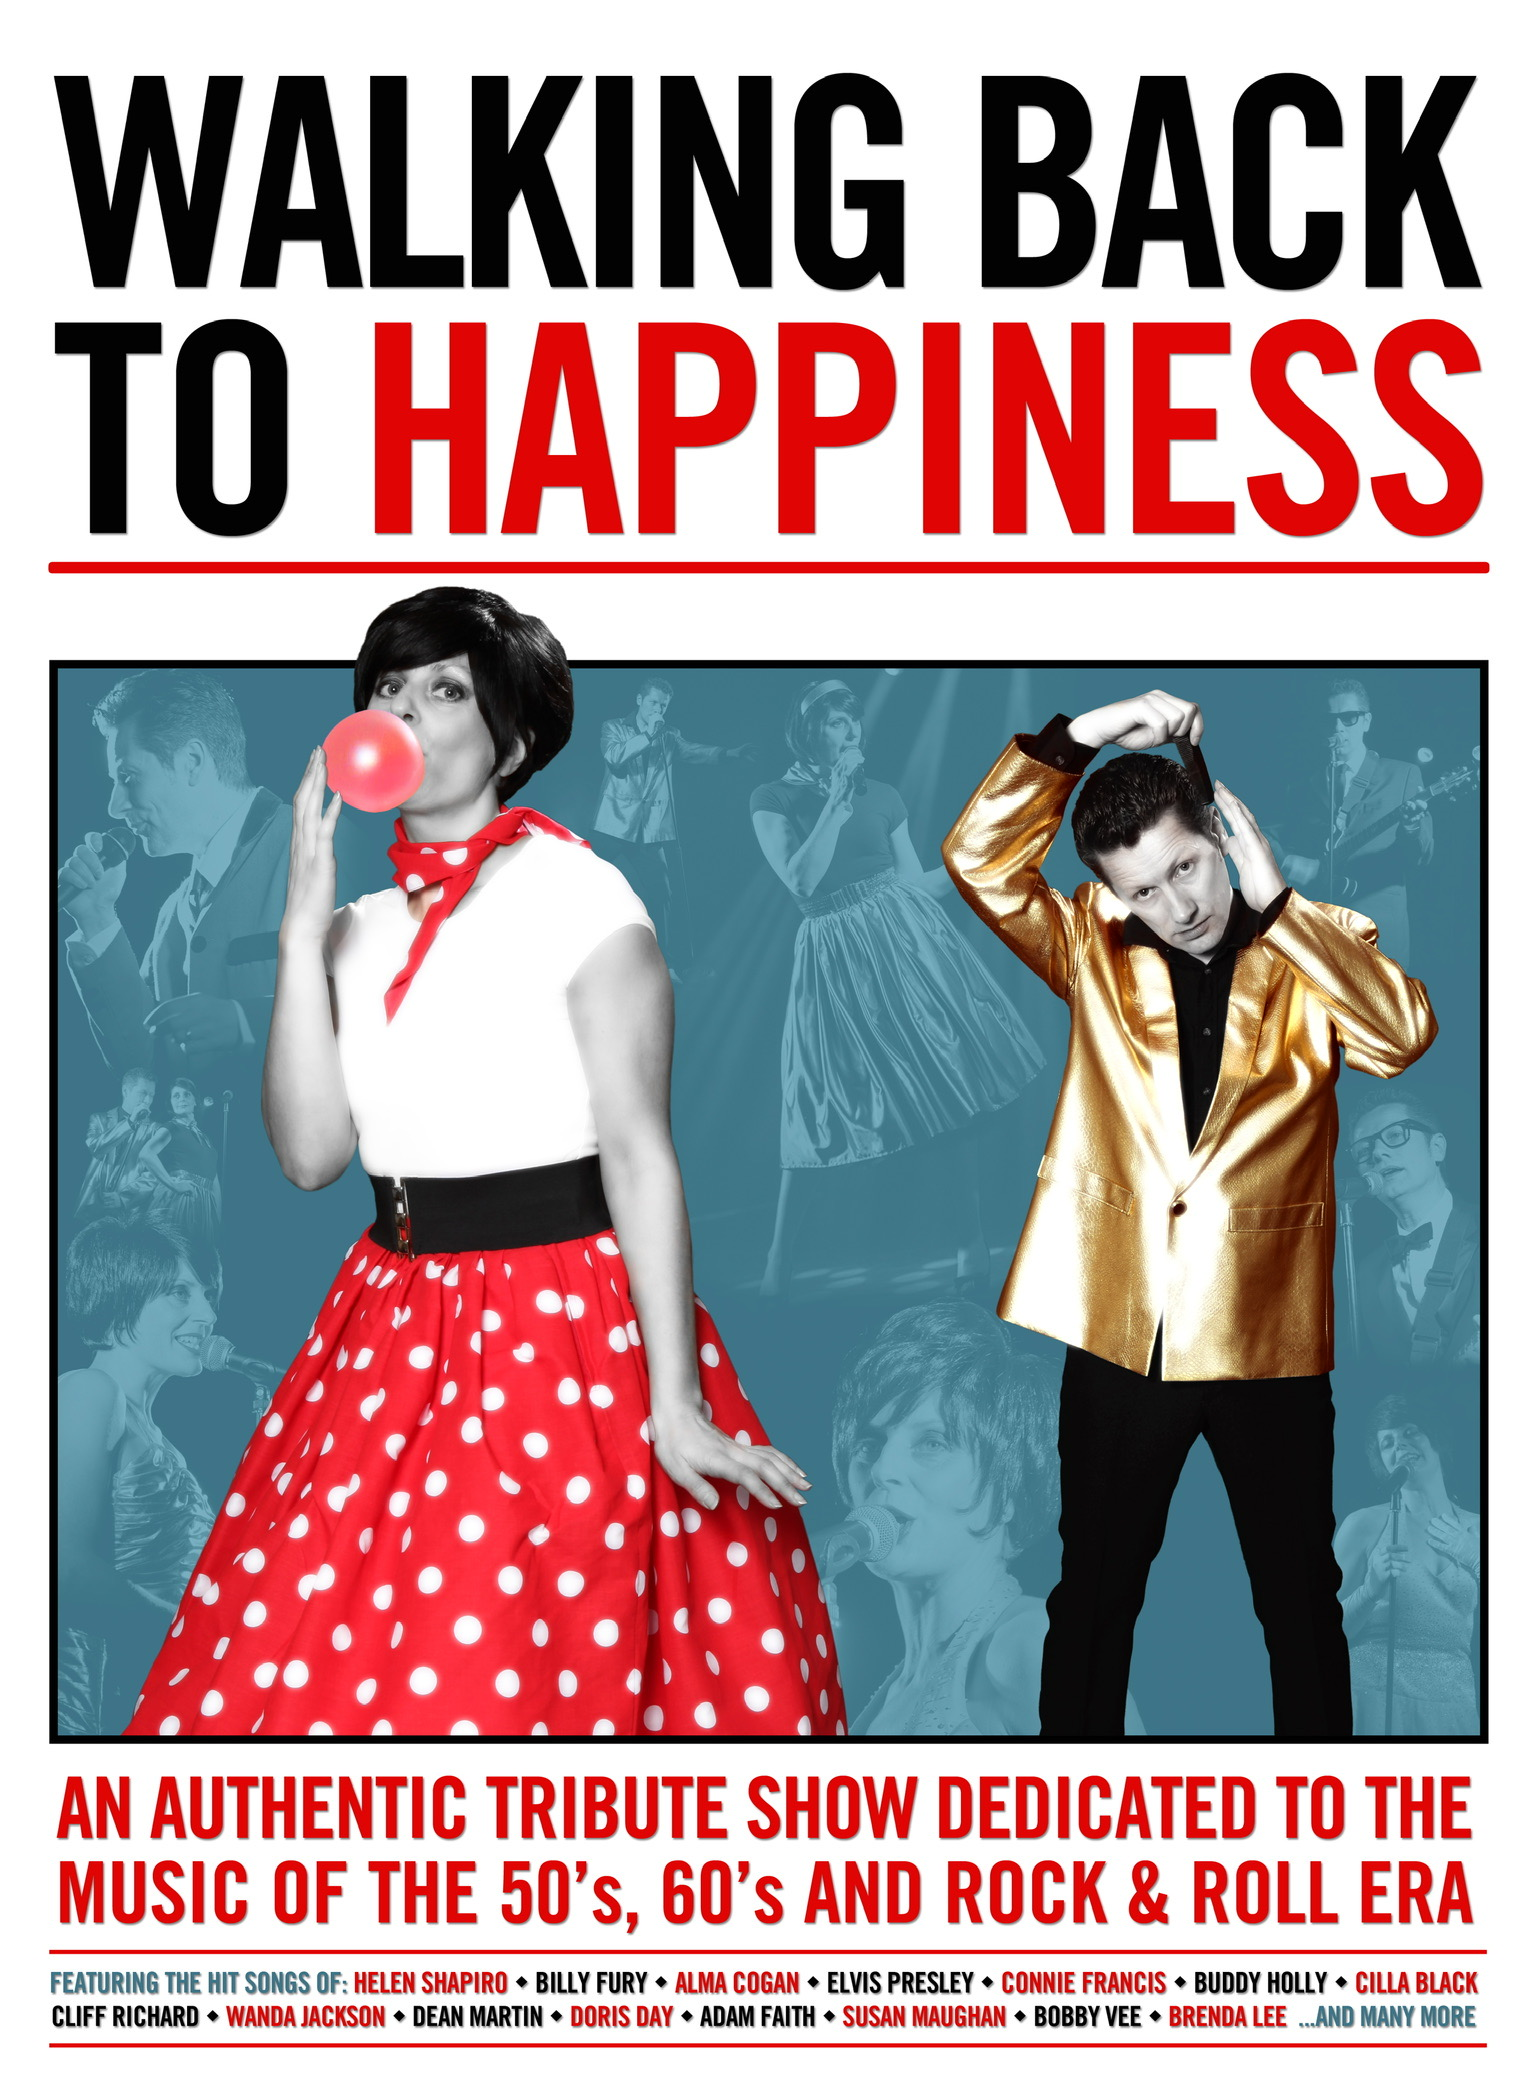 Walking Back To Happiness 50/60's Show - Sat 28th March 2020